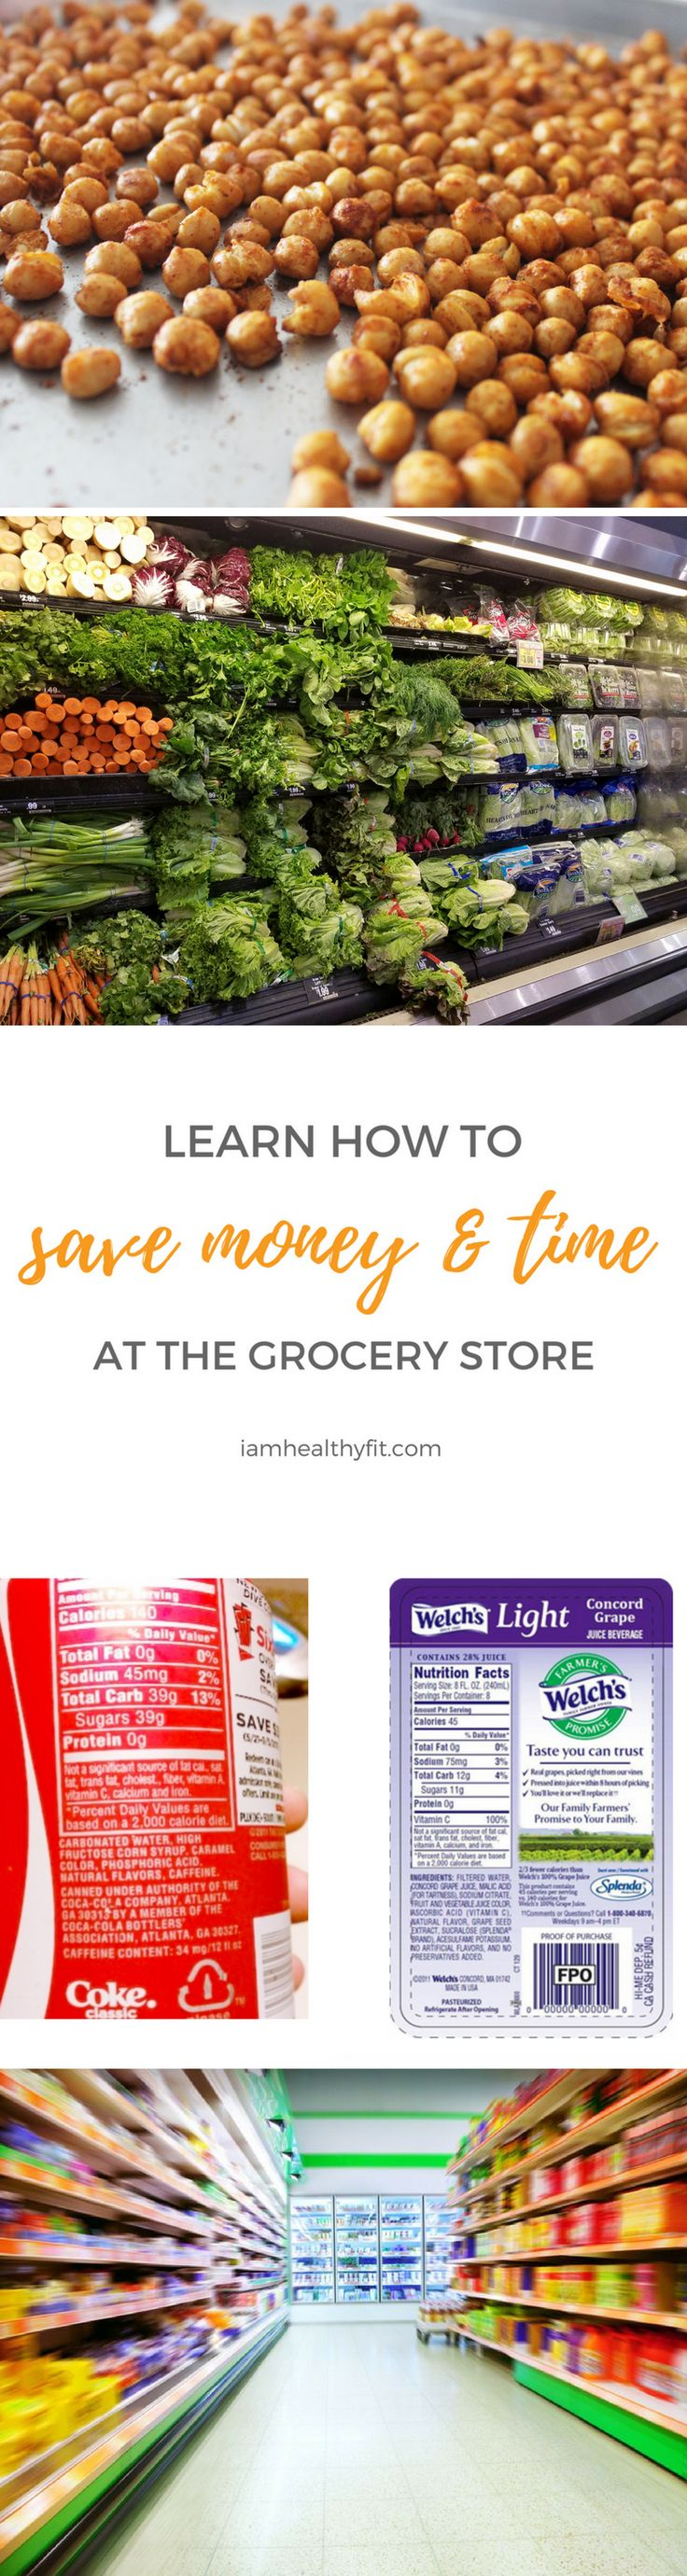 Tired of wasting time and money at the grocery store? Here are five simple things you can do to stay in control the next time you visit.